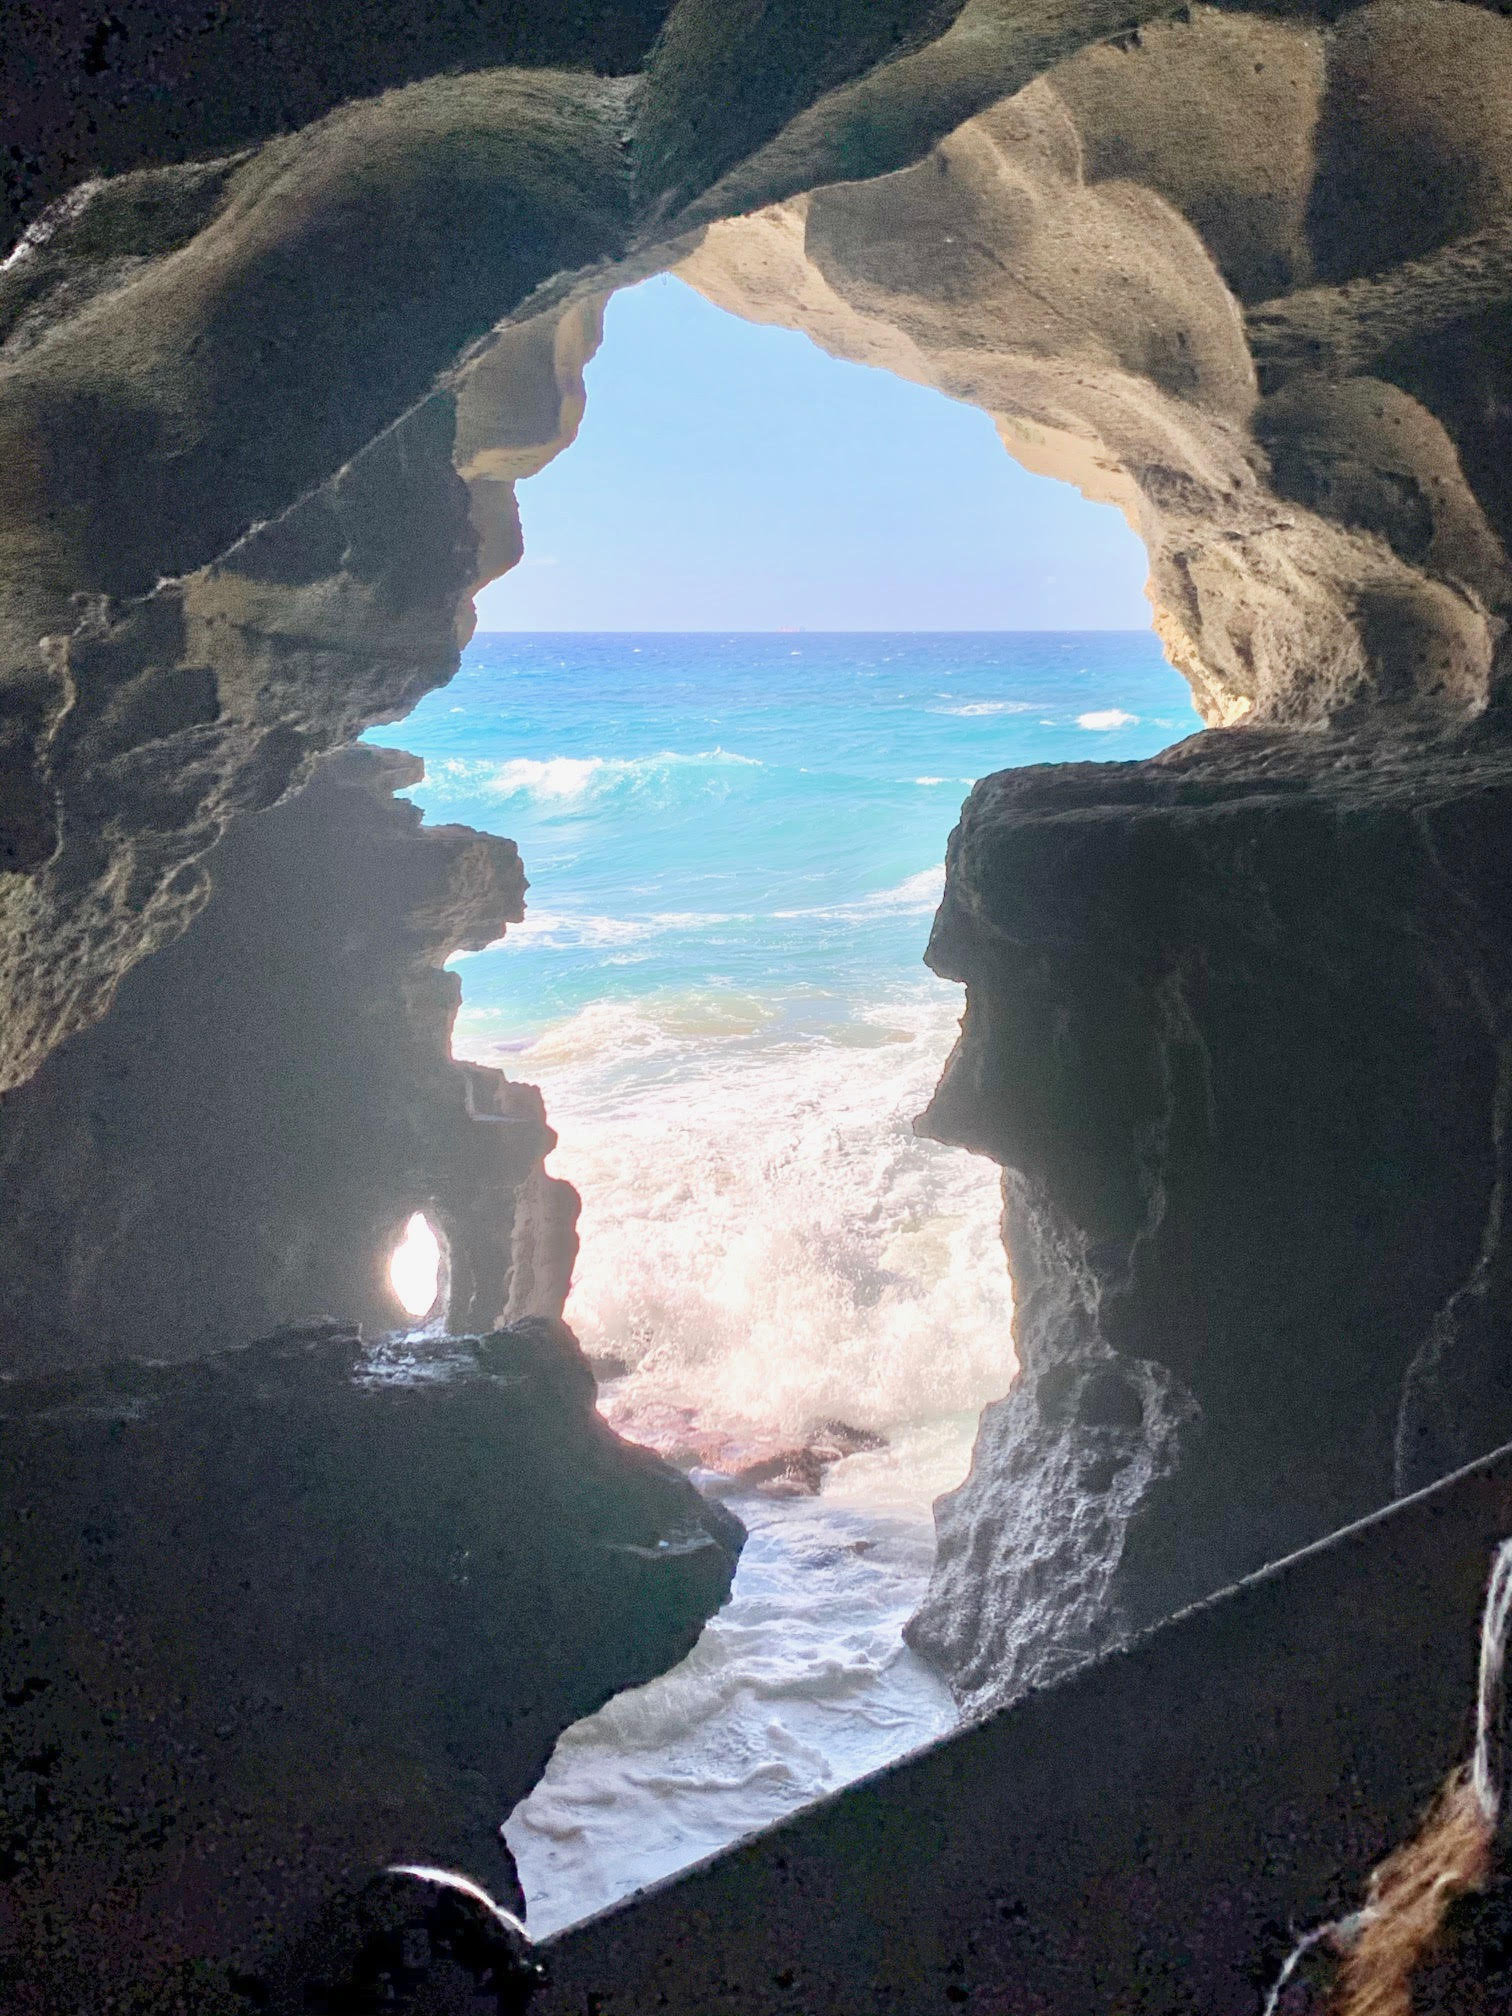 Cave in Hercules in Morocco